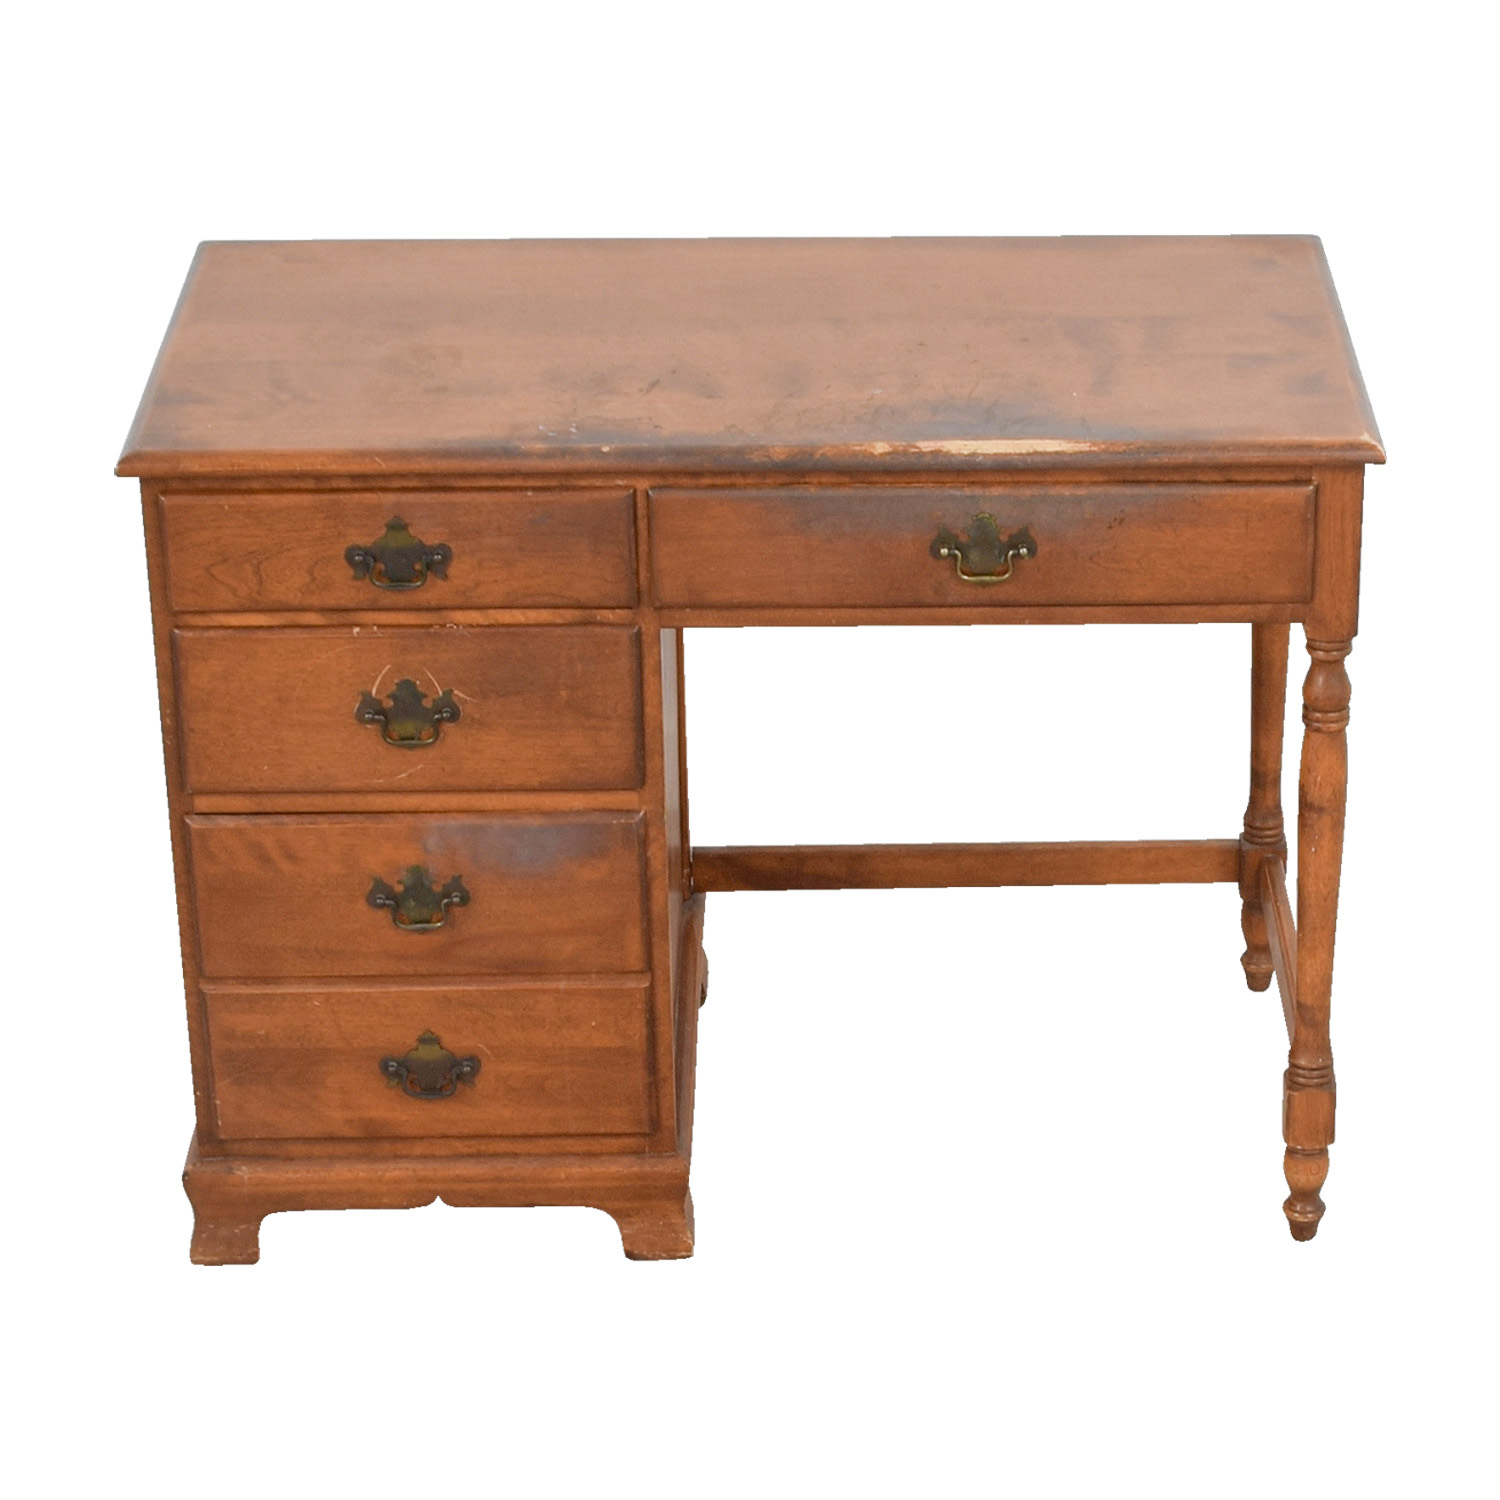 buy Ethan Allen Vintage Baumritter Maple Wood Desk Ethan Allen Sofas